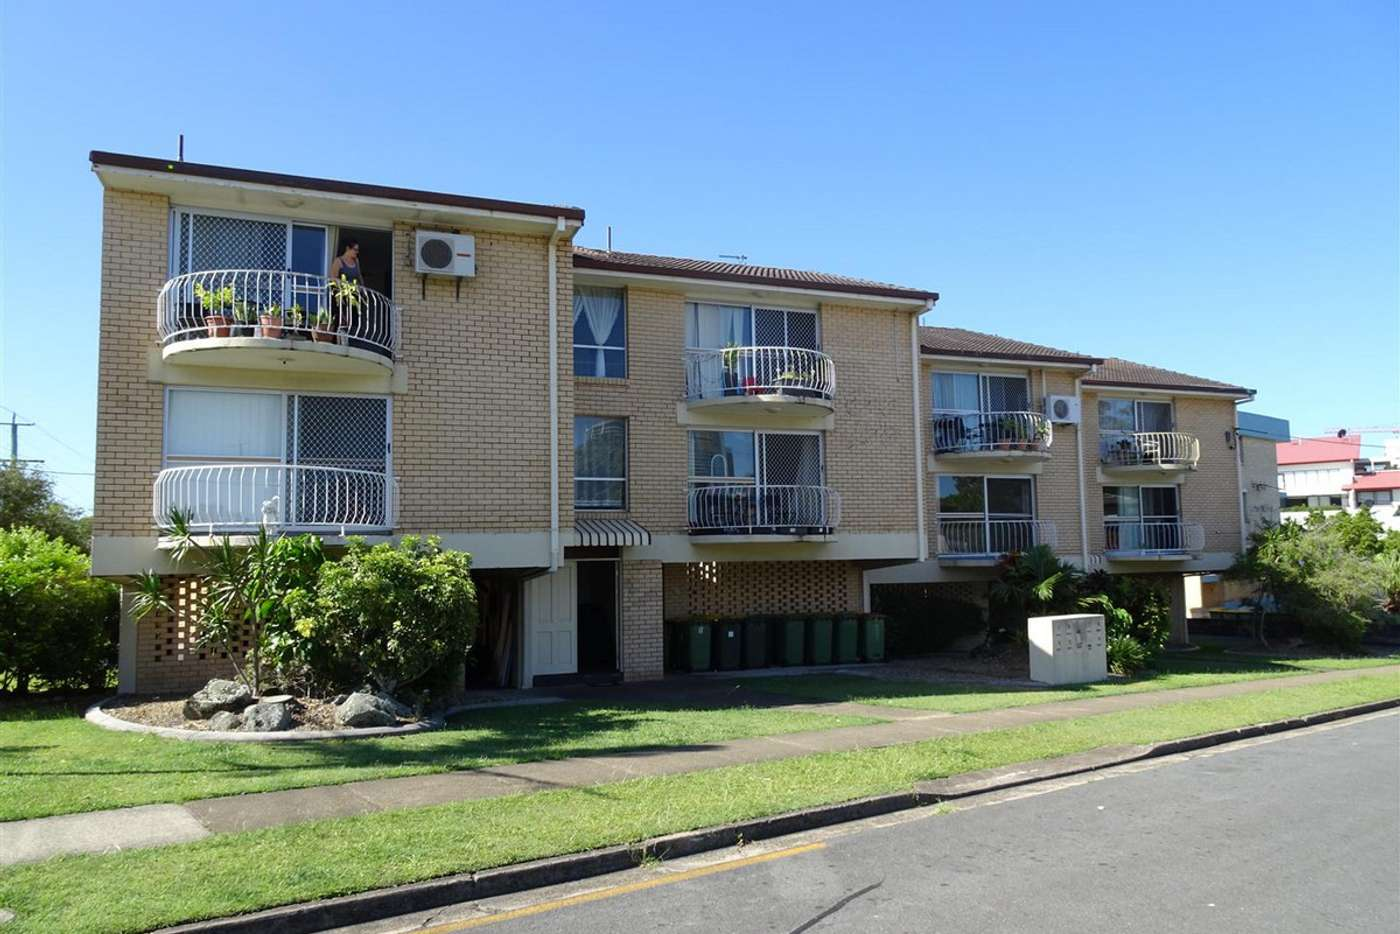 Main view of Homely apartment listing, 3/49 Railway Street, Southport QLD 4215